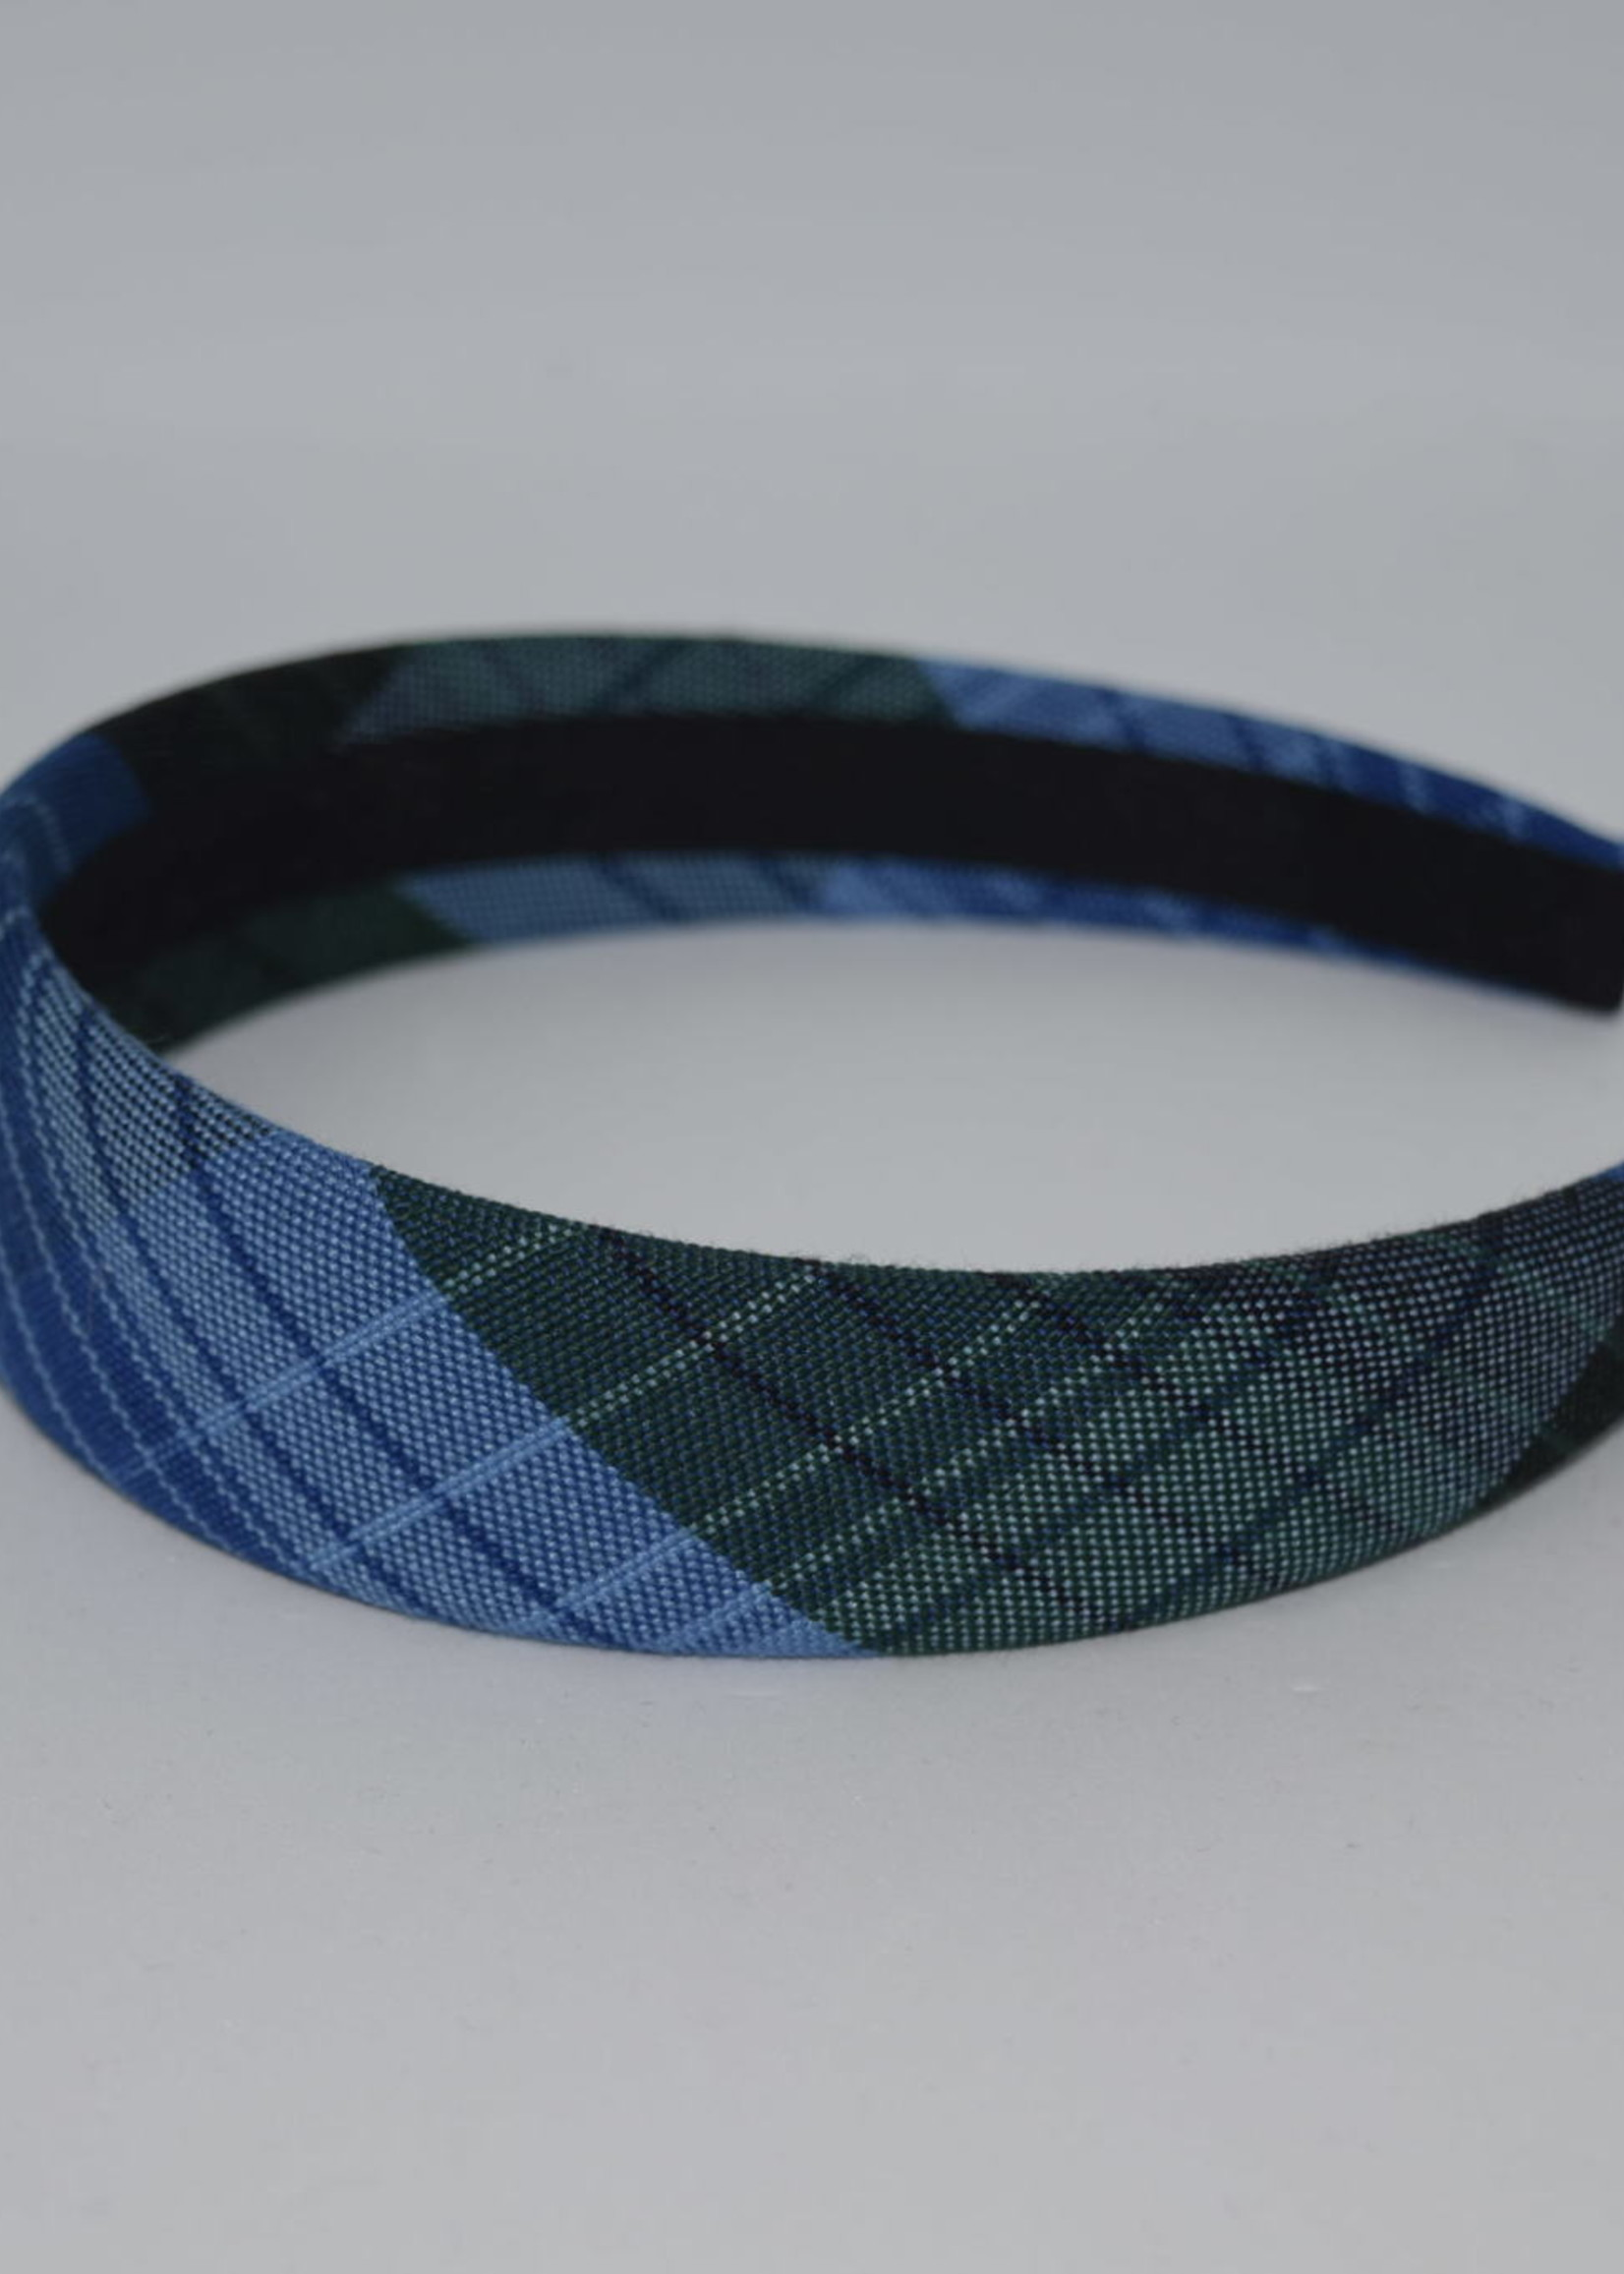 EDT Wide padded headband w/out metal tips P46